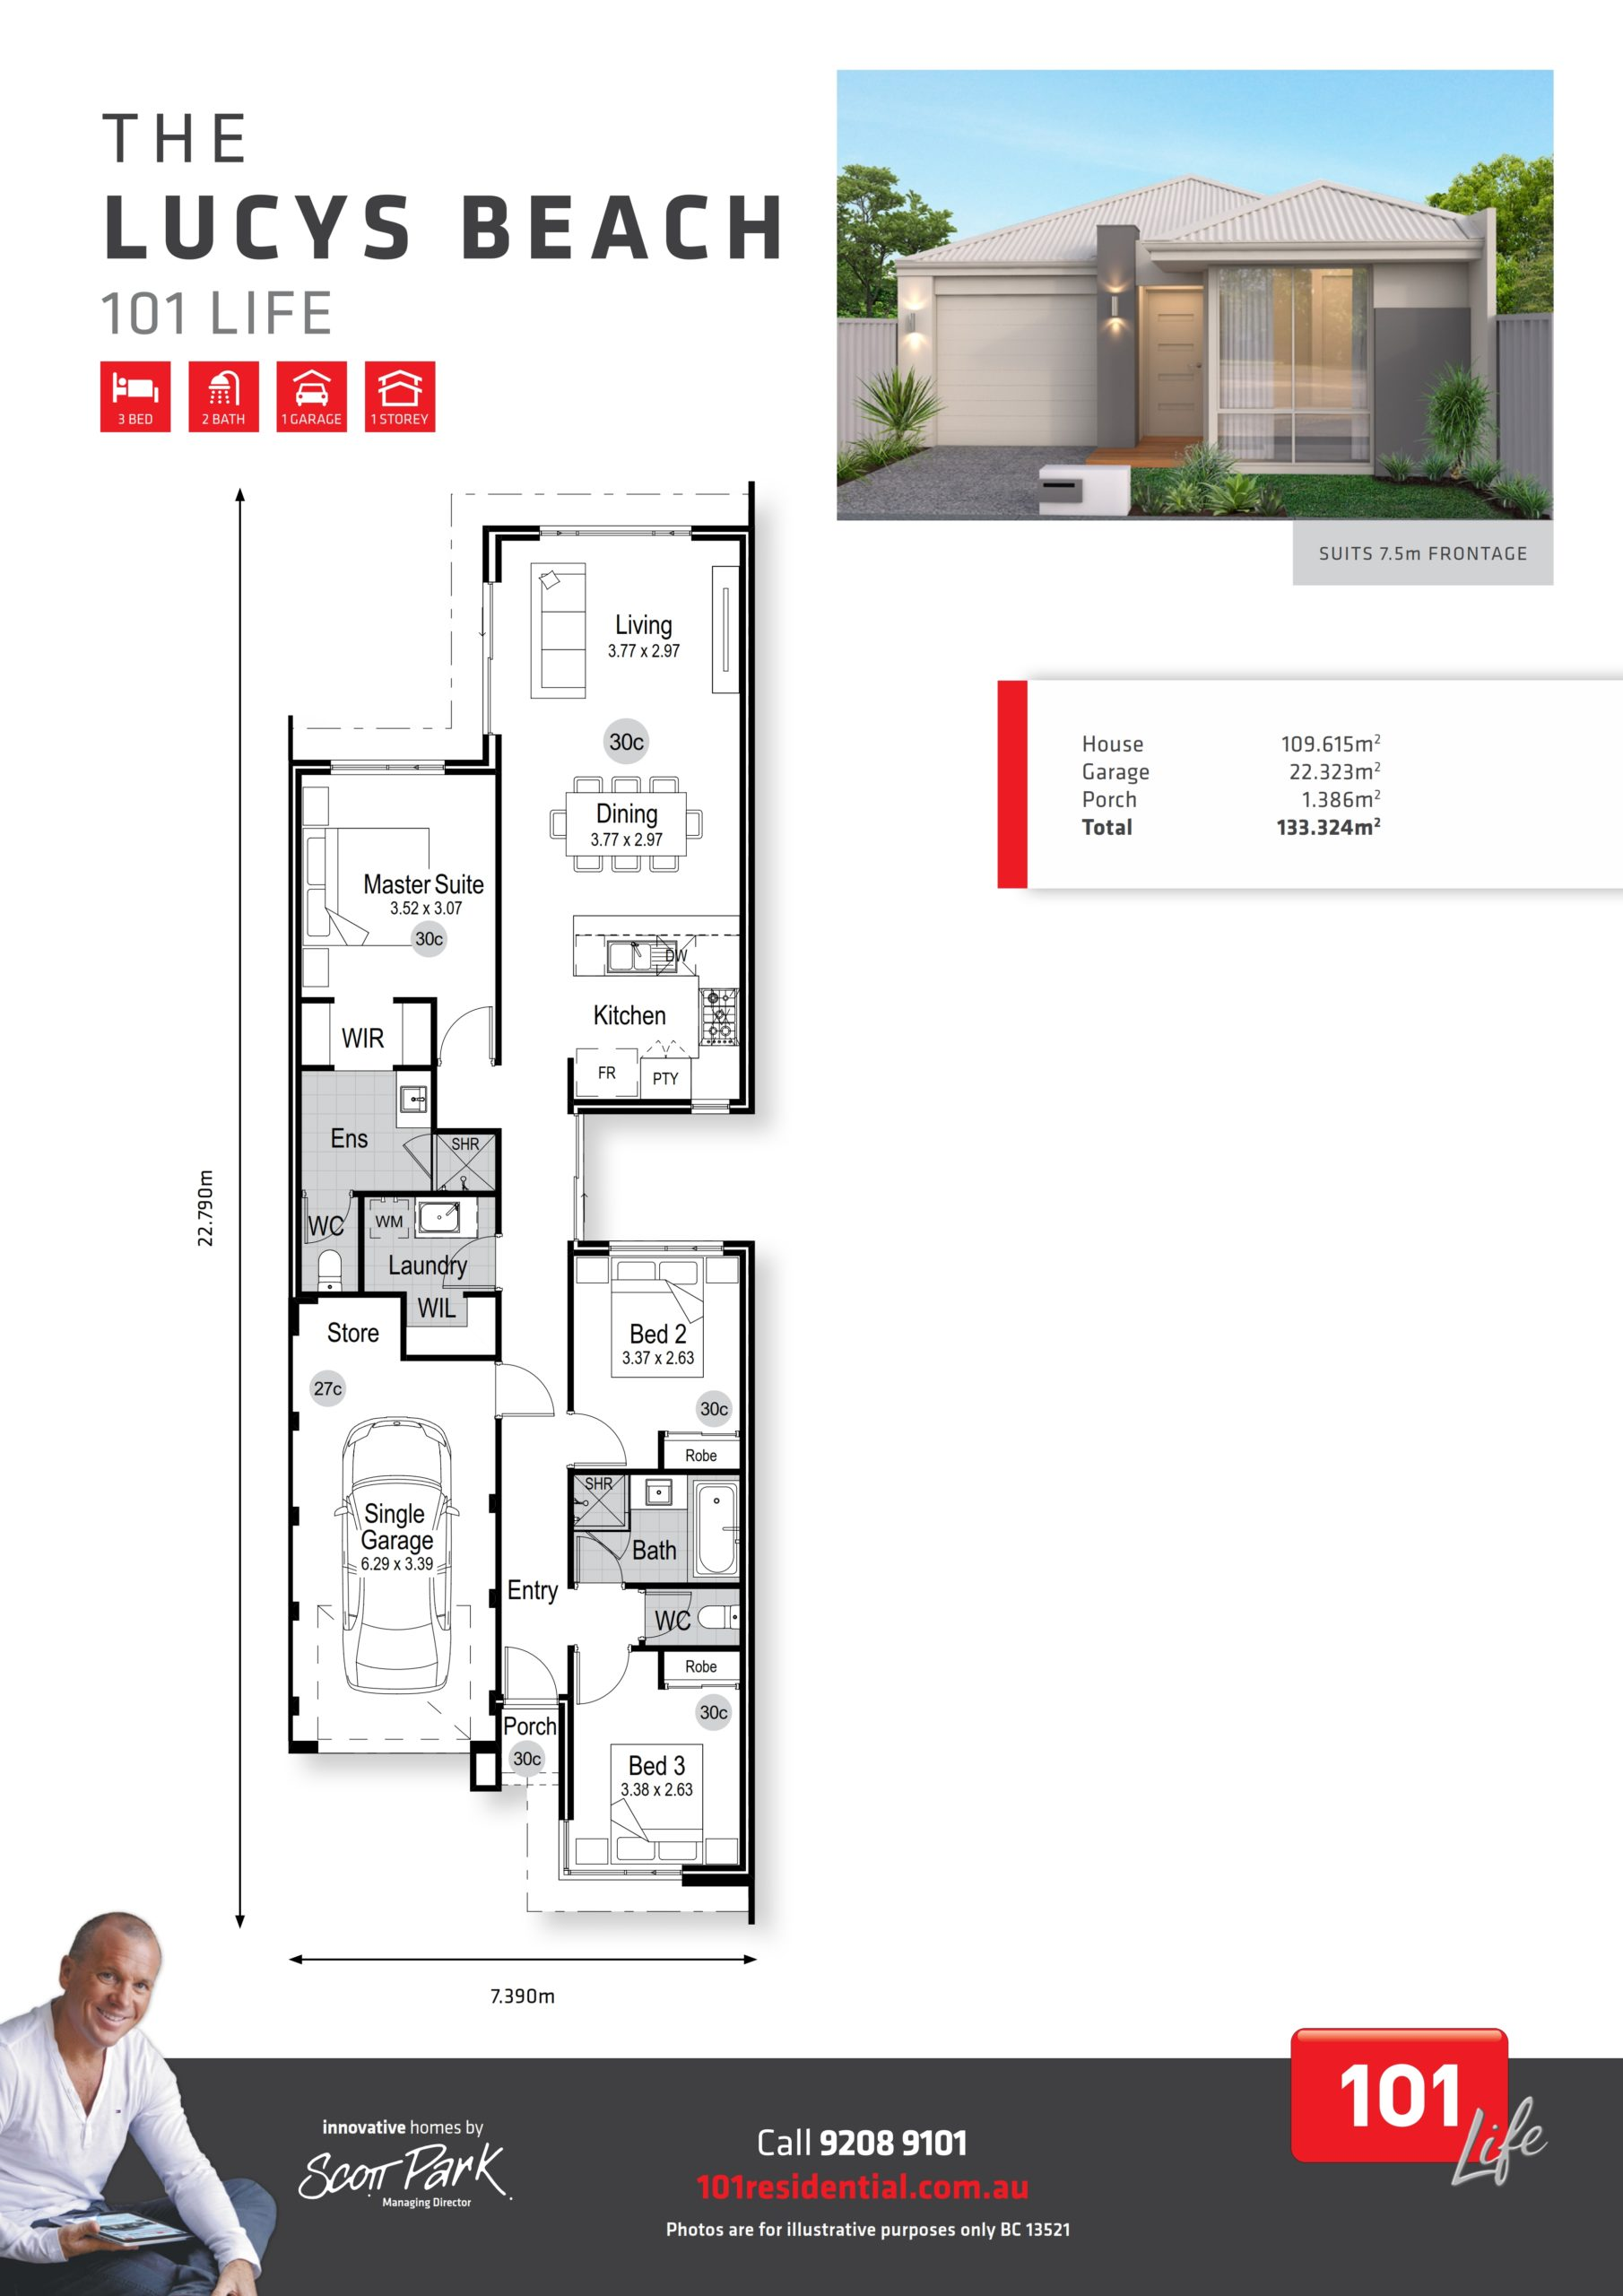 101 Life A3 Floor Plan - Lucys Beach WEB_001